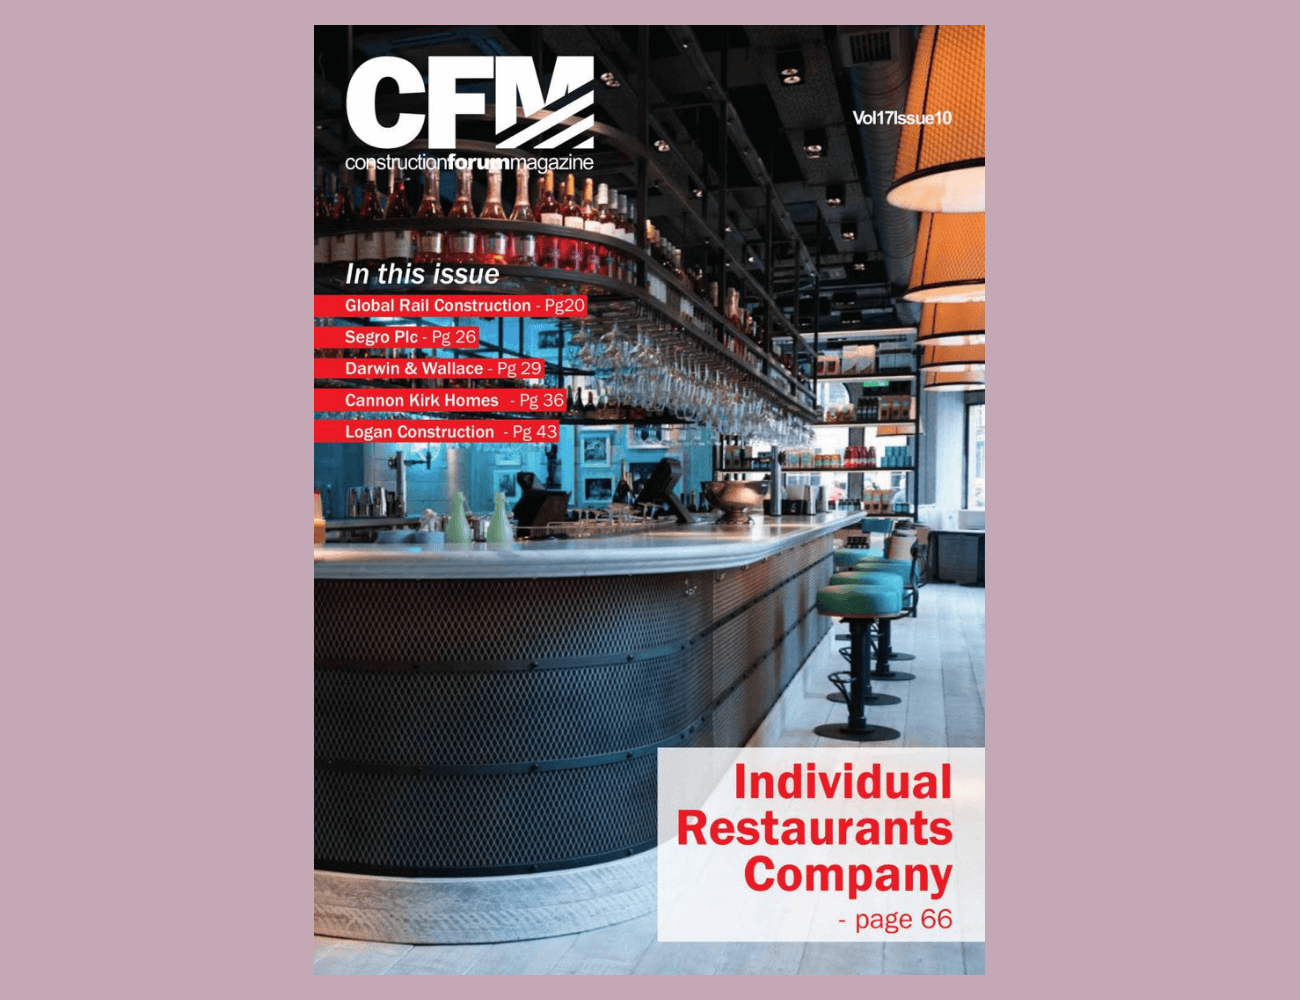 CONSTRUCTION FORUM MAGAZINE ISSUE 10